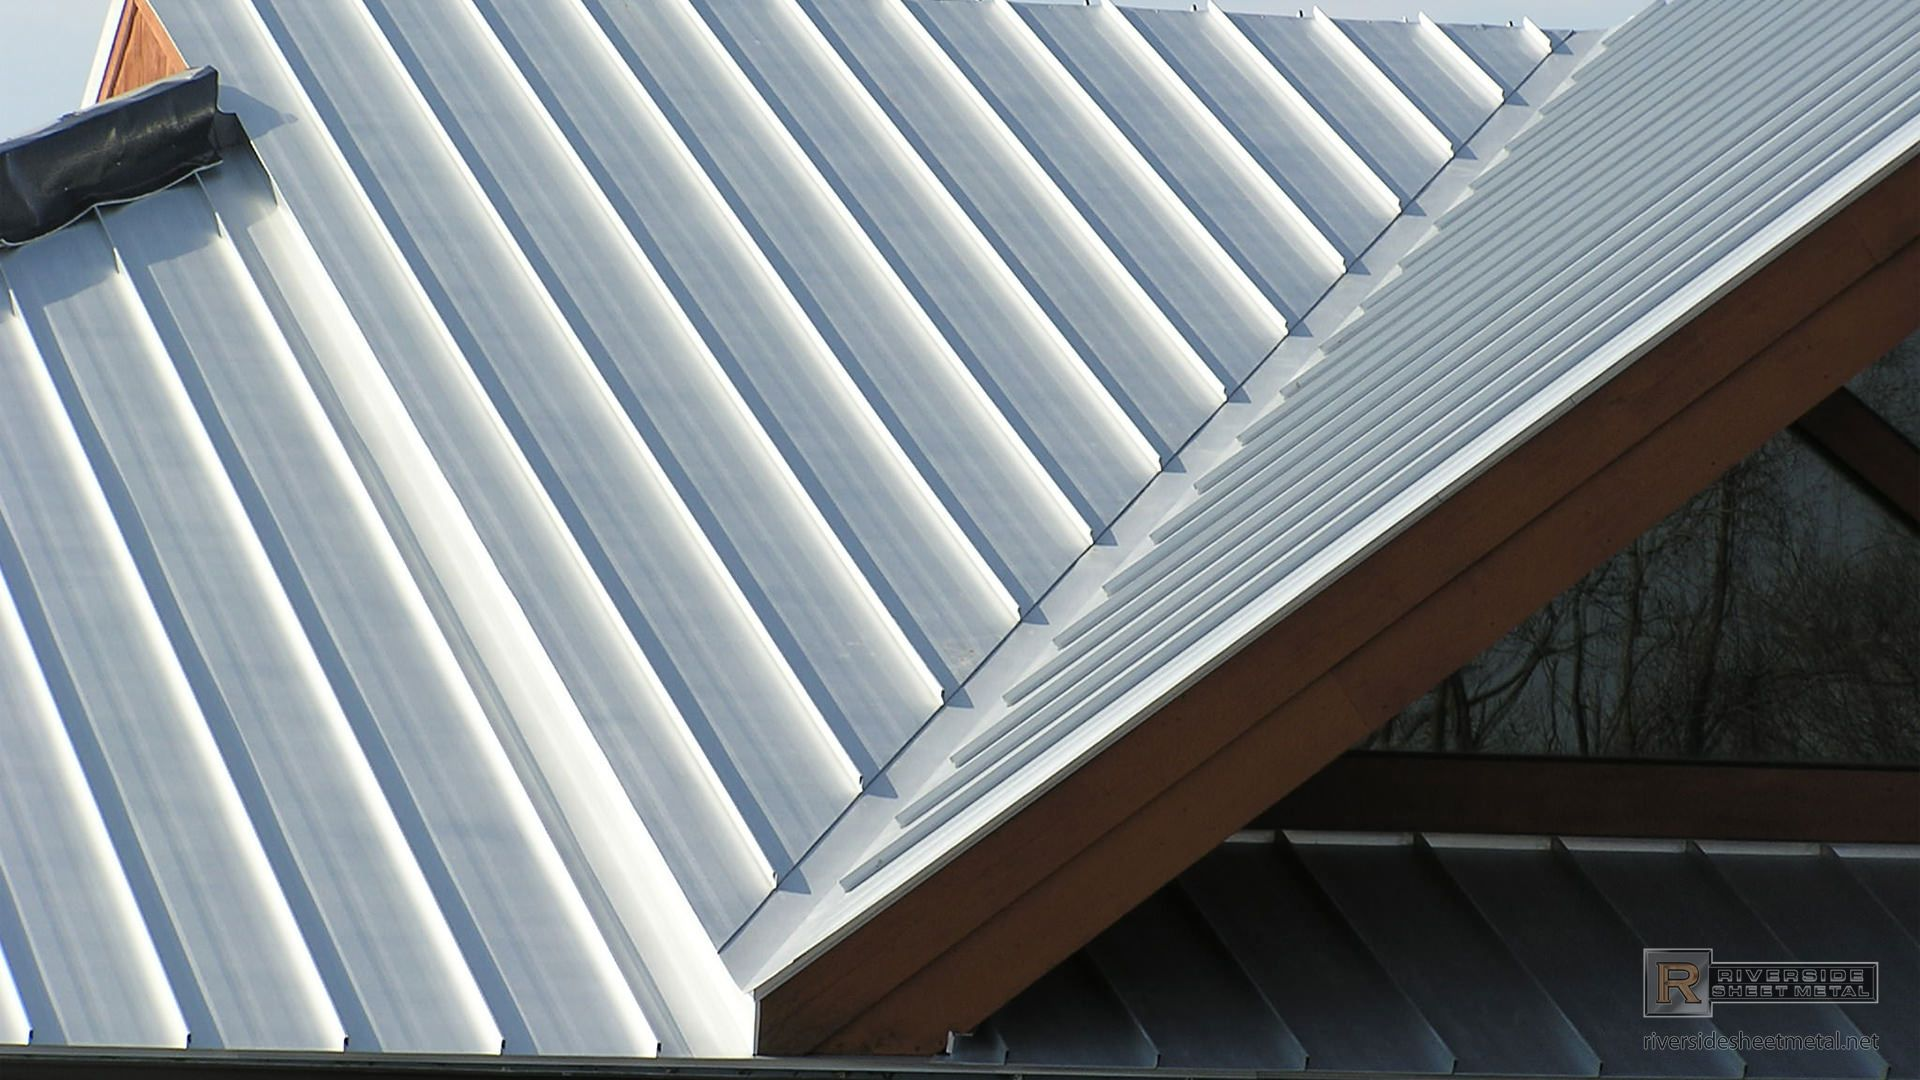 Galvalume Metal Roof Victory Metal Roofing In Easley Sc Metal Roof Panels Steel Roof Panels Corrugated Metal Roof Panels